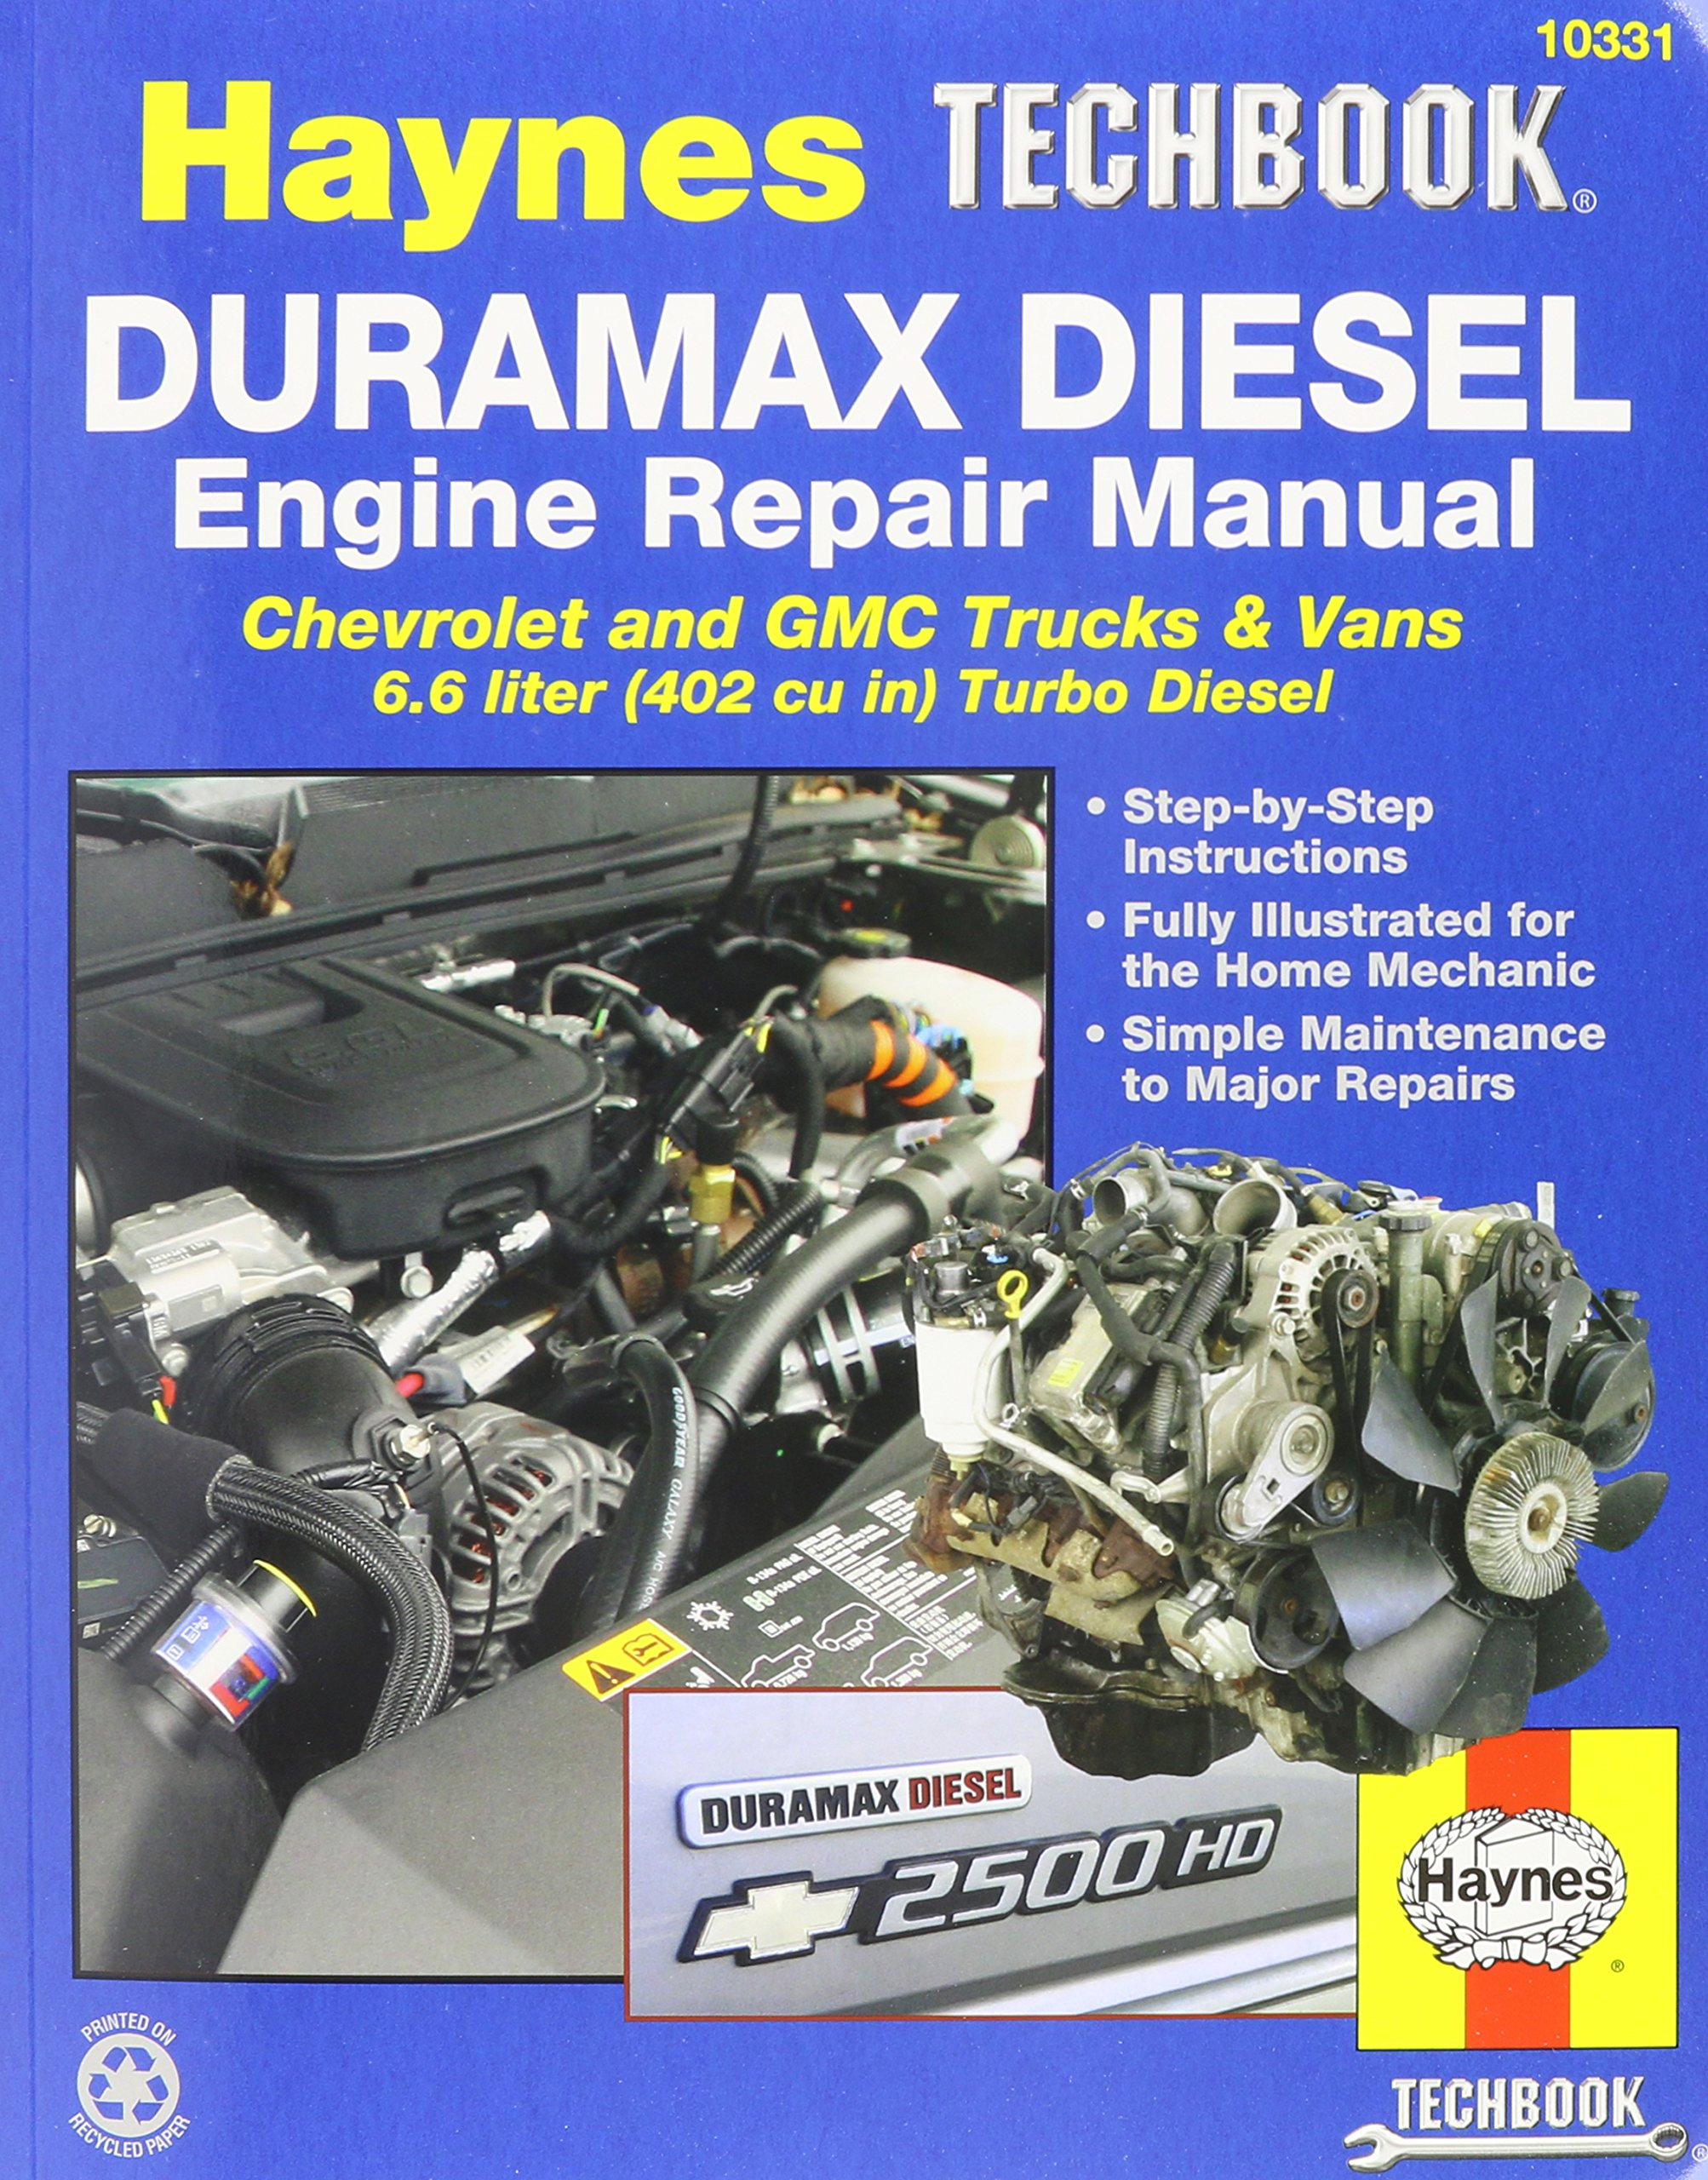 Haynes Techbook Duramax Diesel Engine Repair Manual 2001-2012: Amazon.com:  Books